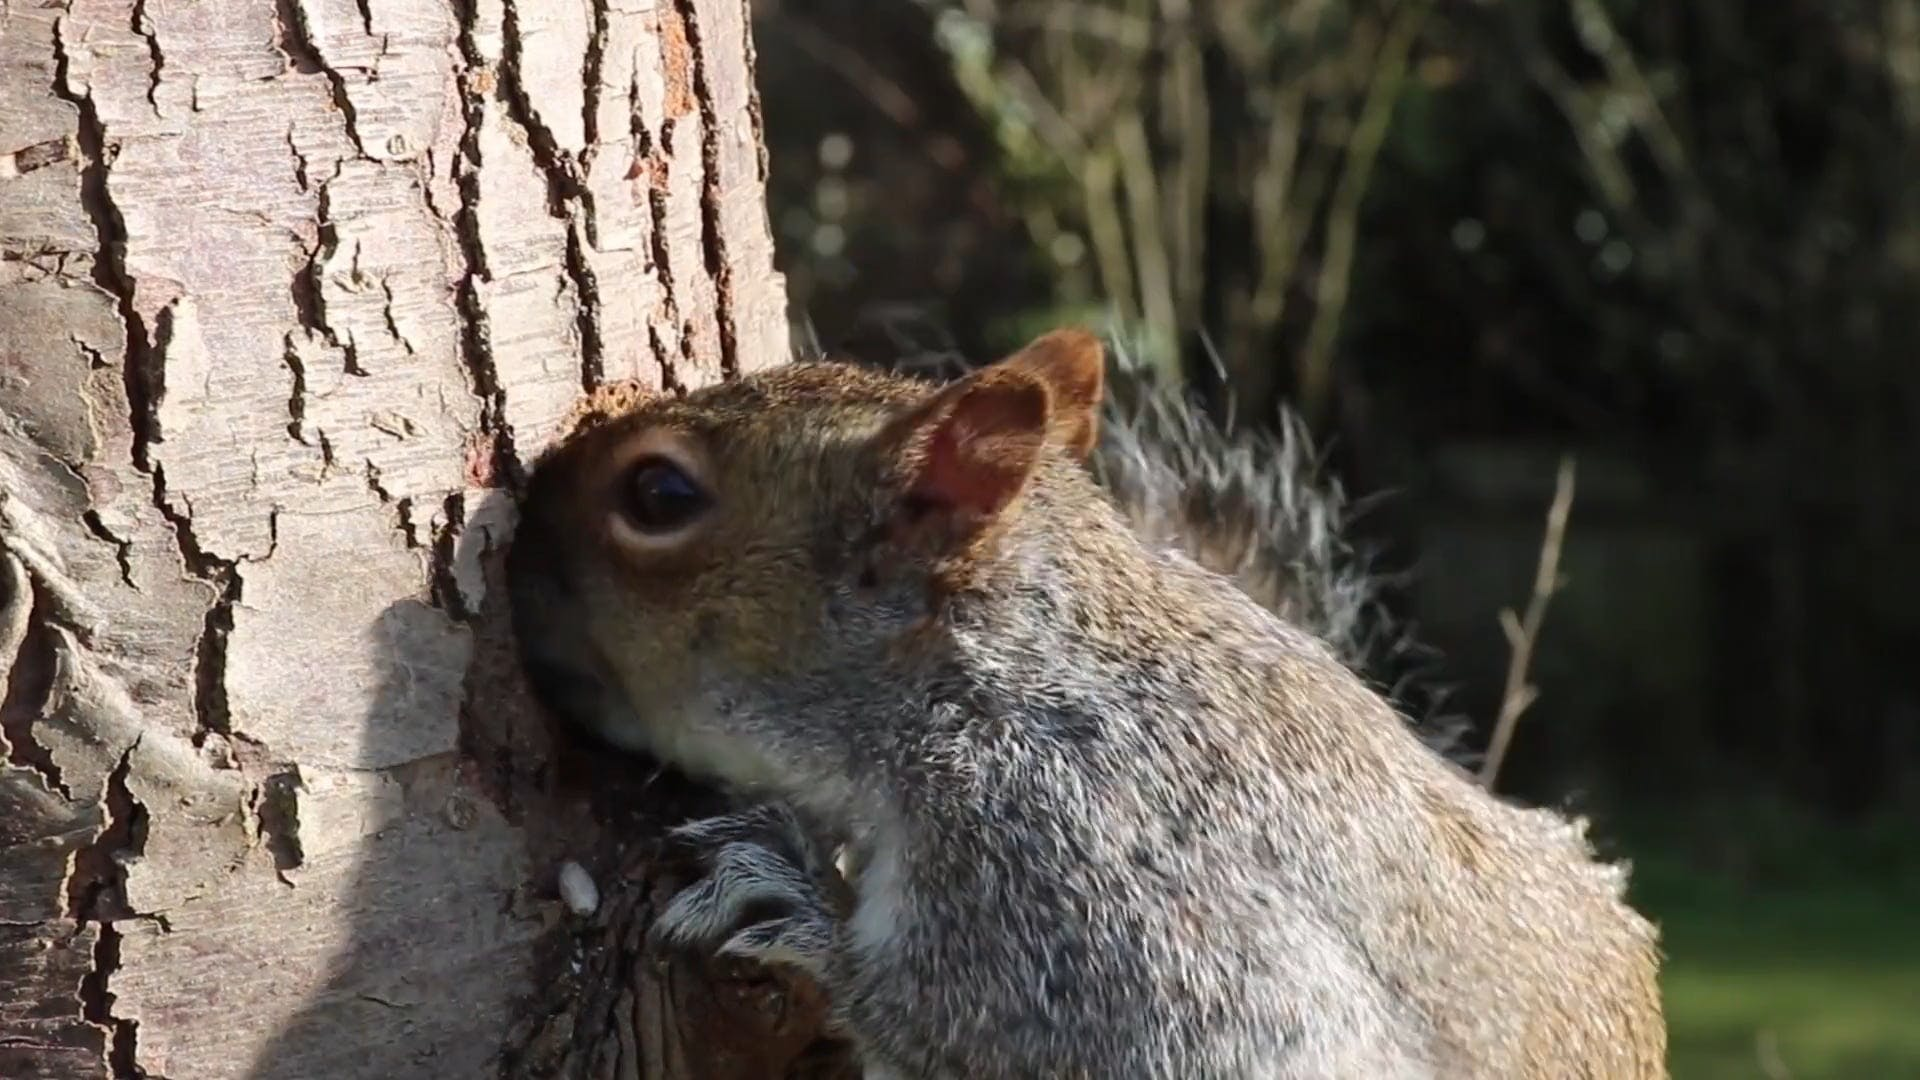 Squirrel Eating From Tree Trunk